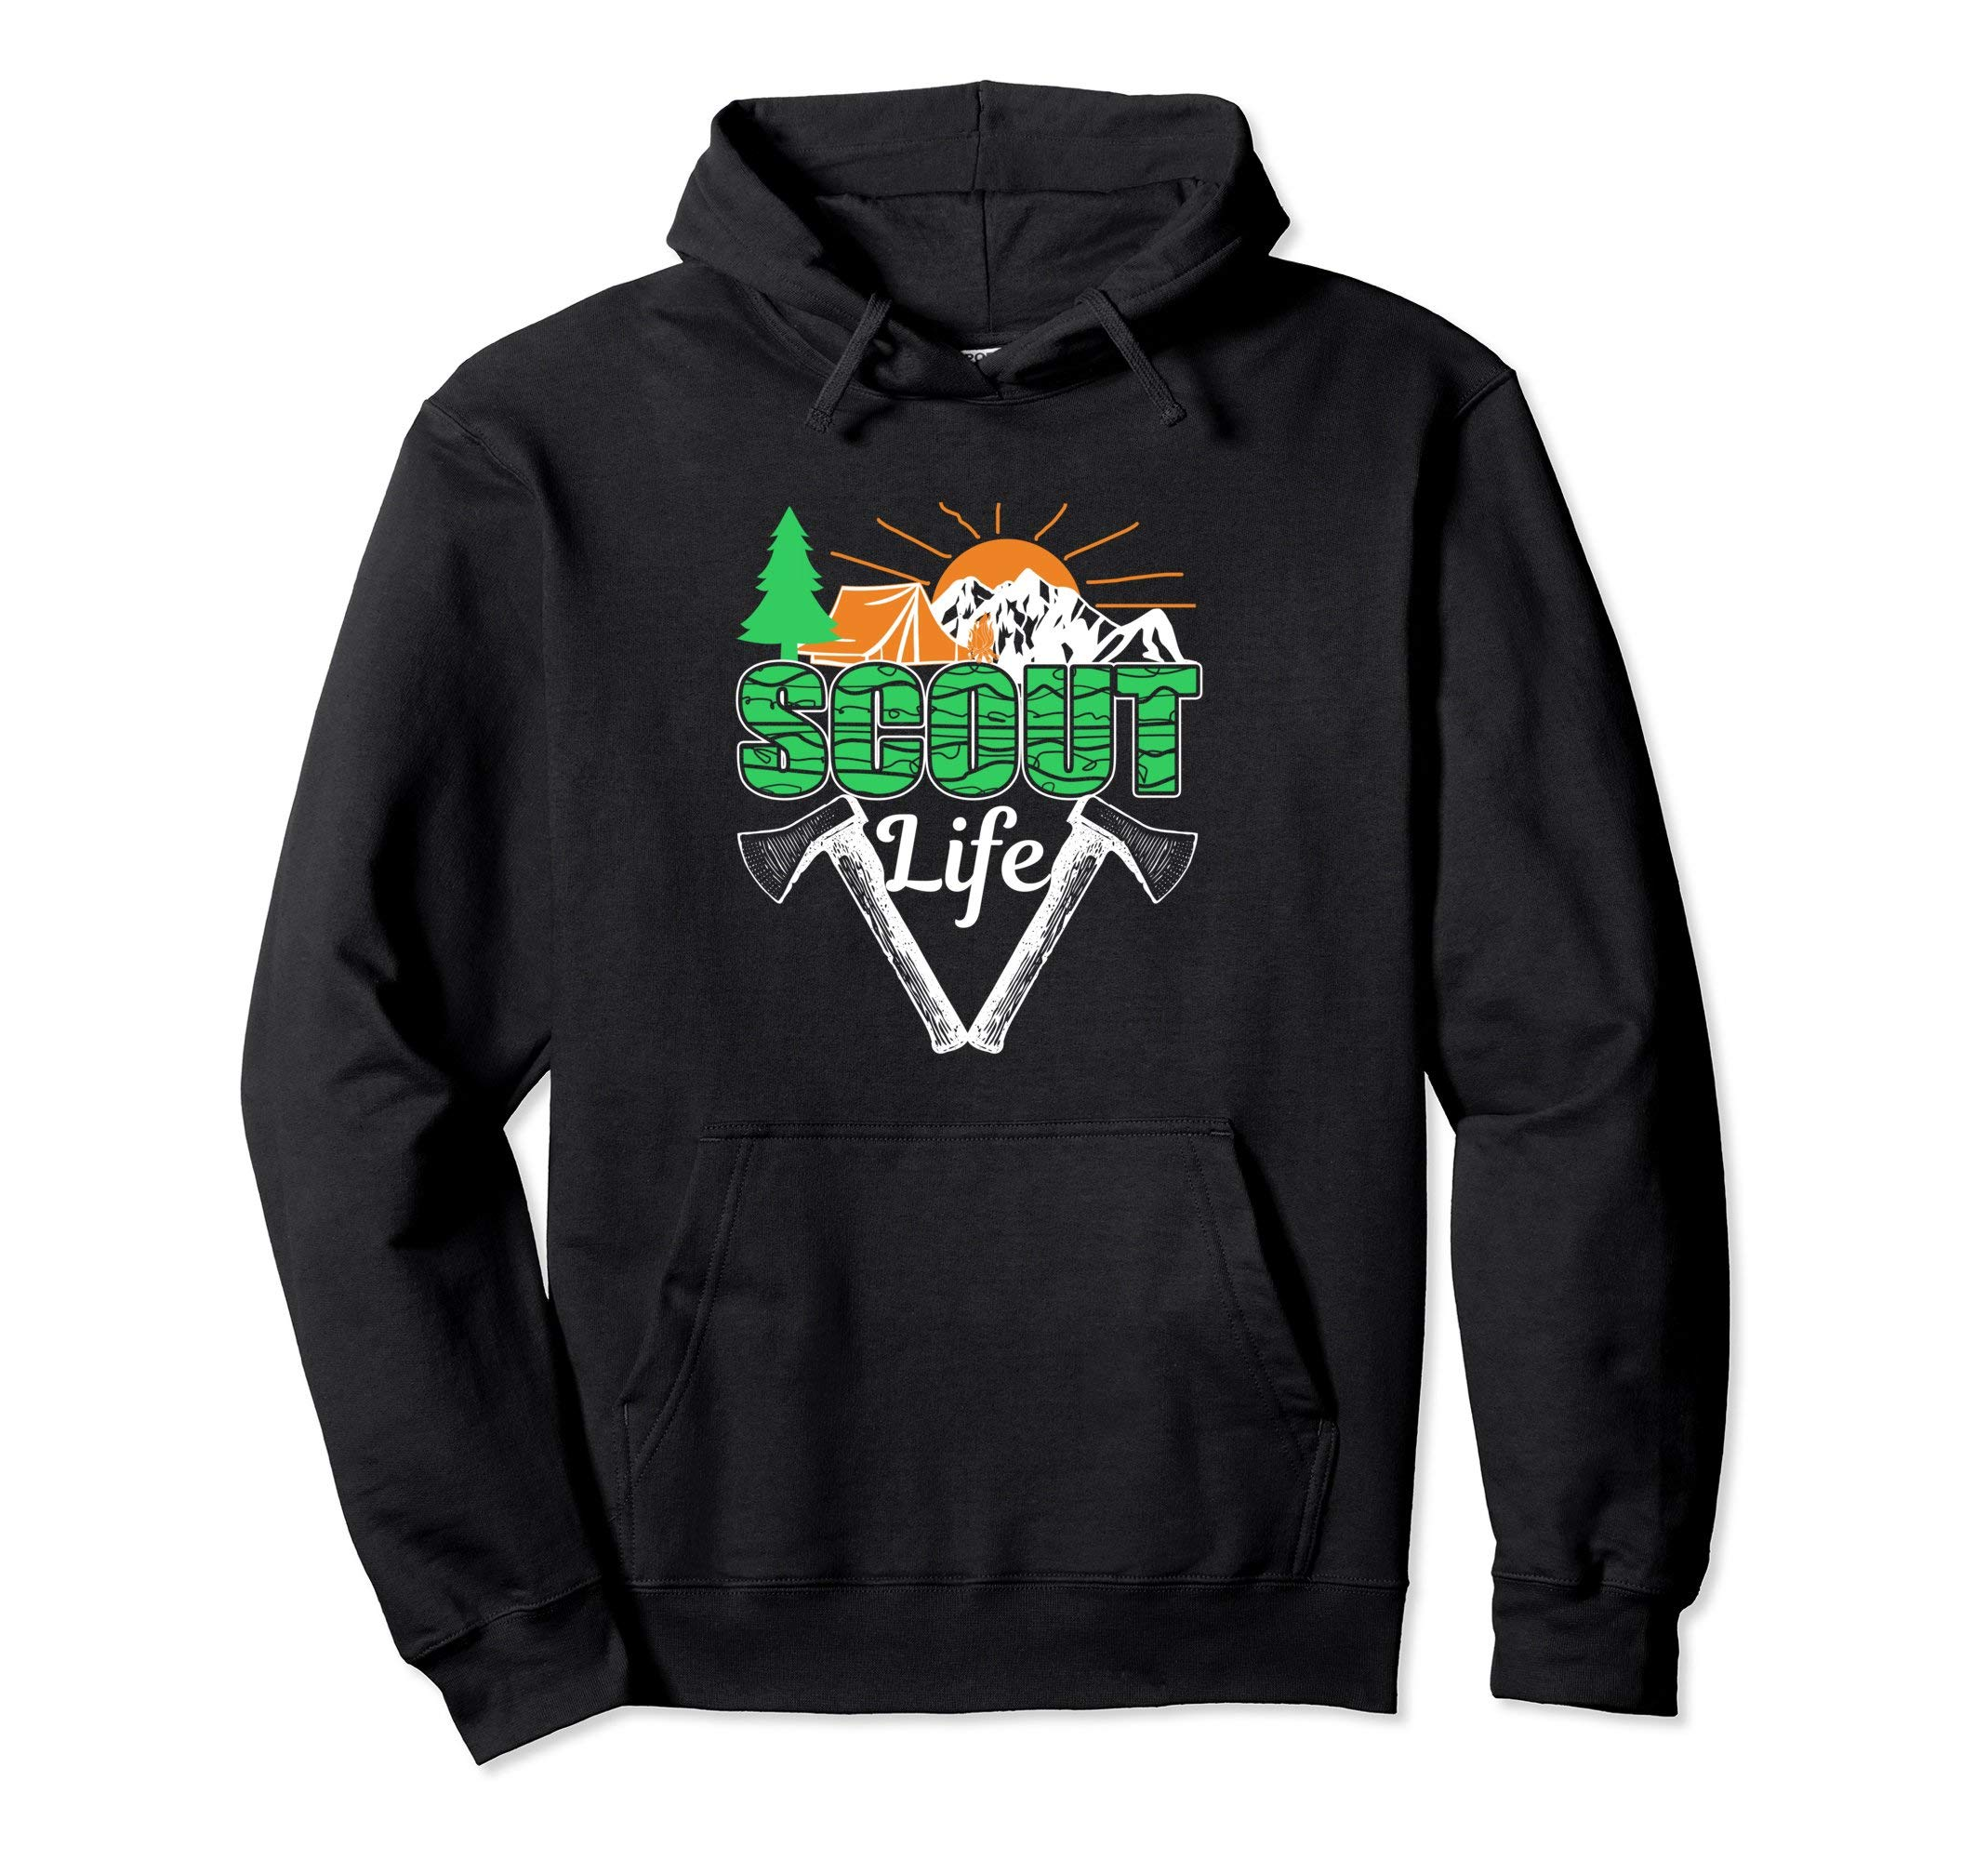 Scout Life Cub Camping Scouting Hiking Leader Boy Hoodie by Scouting Shirts By Ark